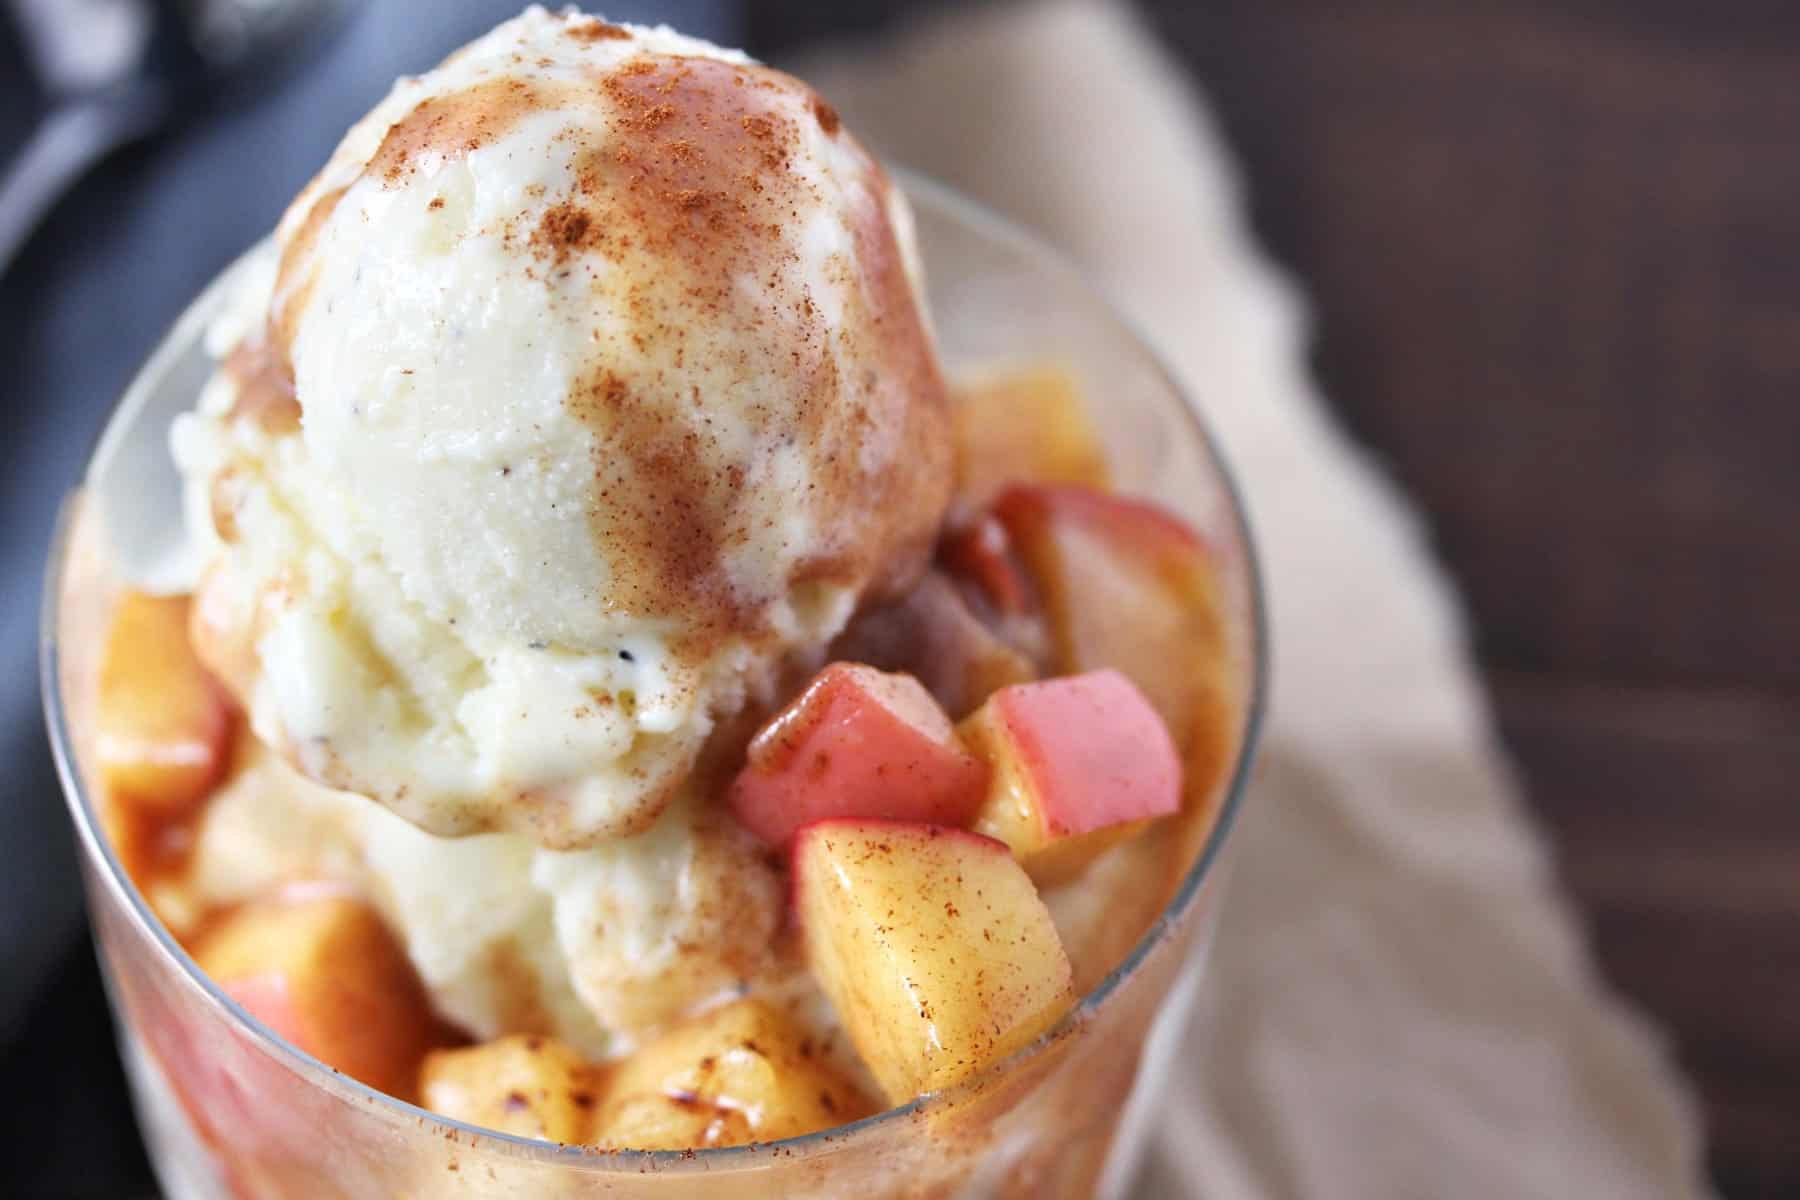 Vanilla ice cream with cinnamon apple topping in a clear glass on grey napkin.